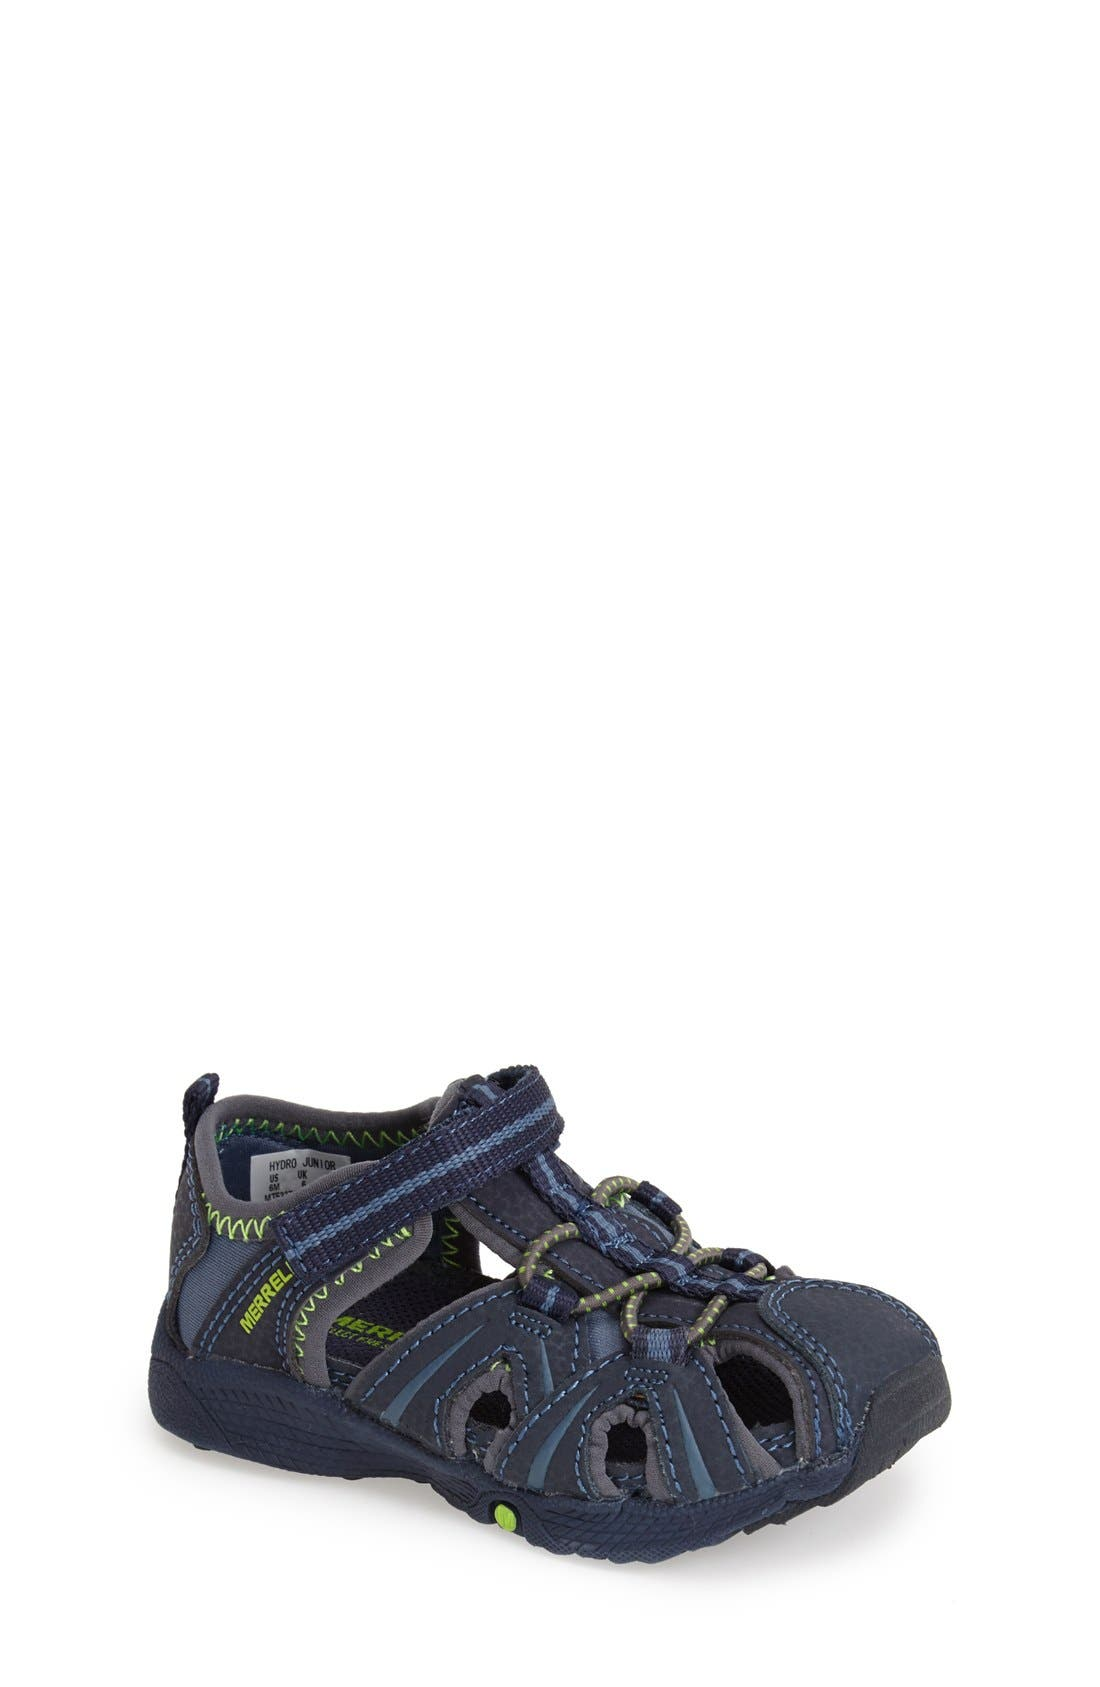 MERRELL 'Hydro Junior' M-Select Water Sandal, Main, color, NAVY/ GREEN